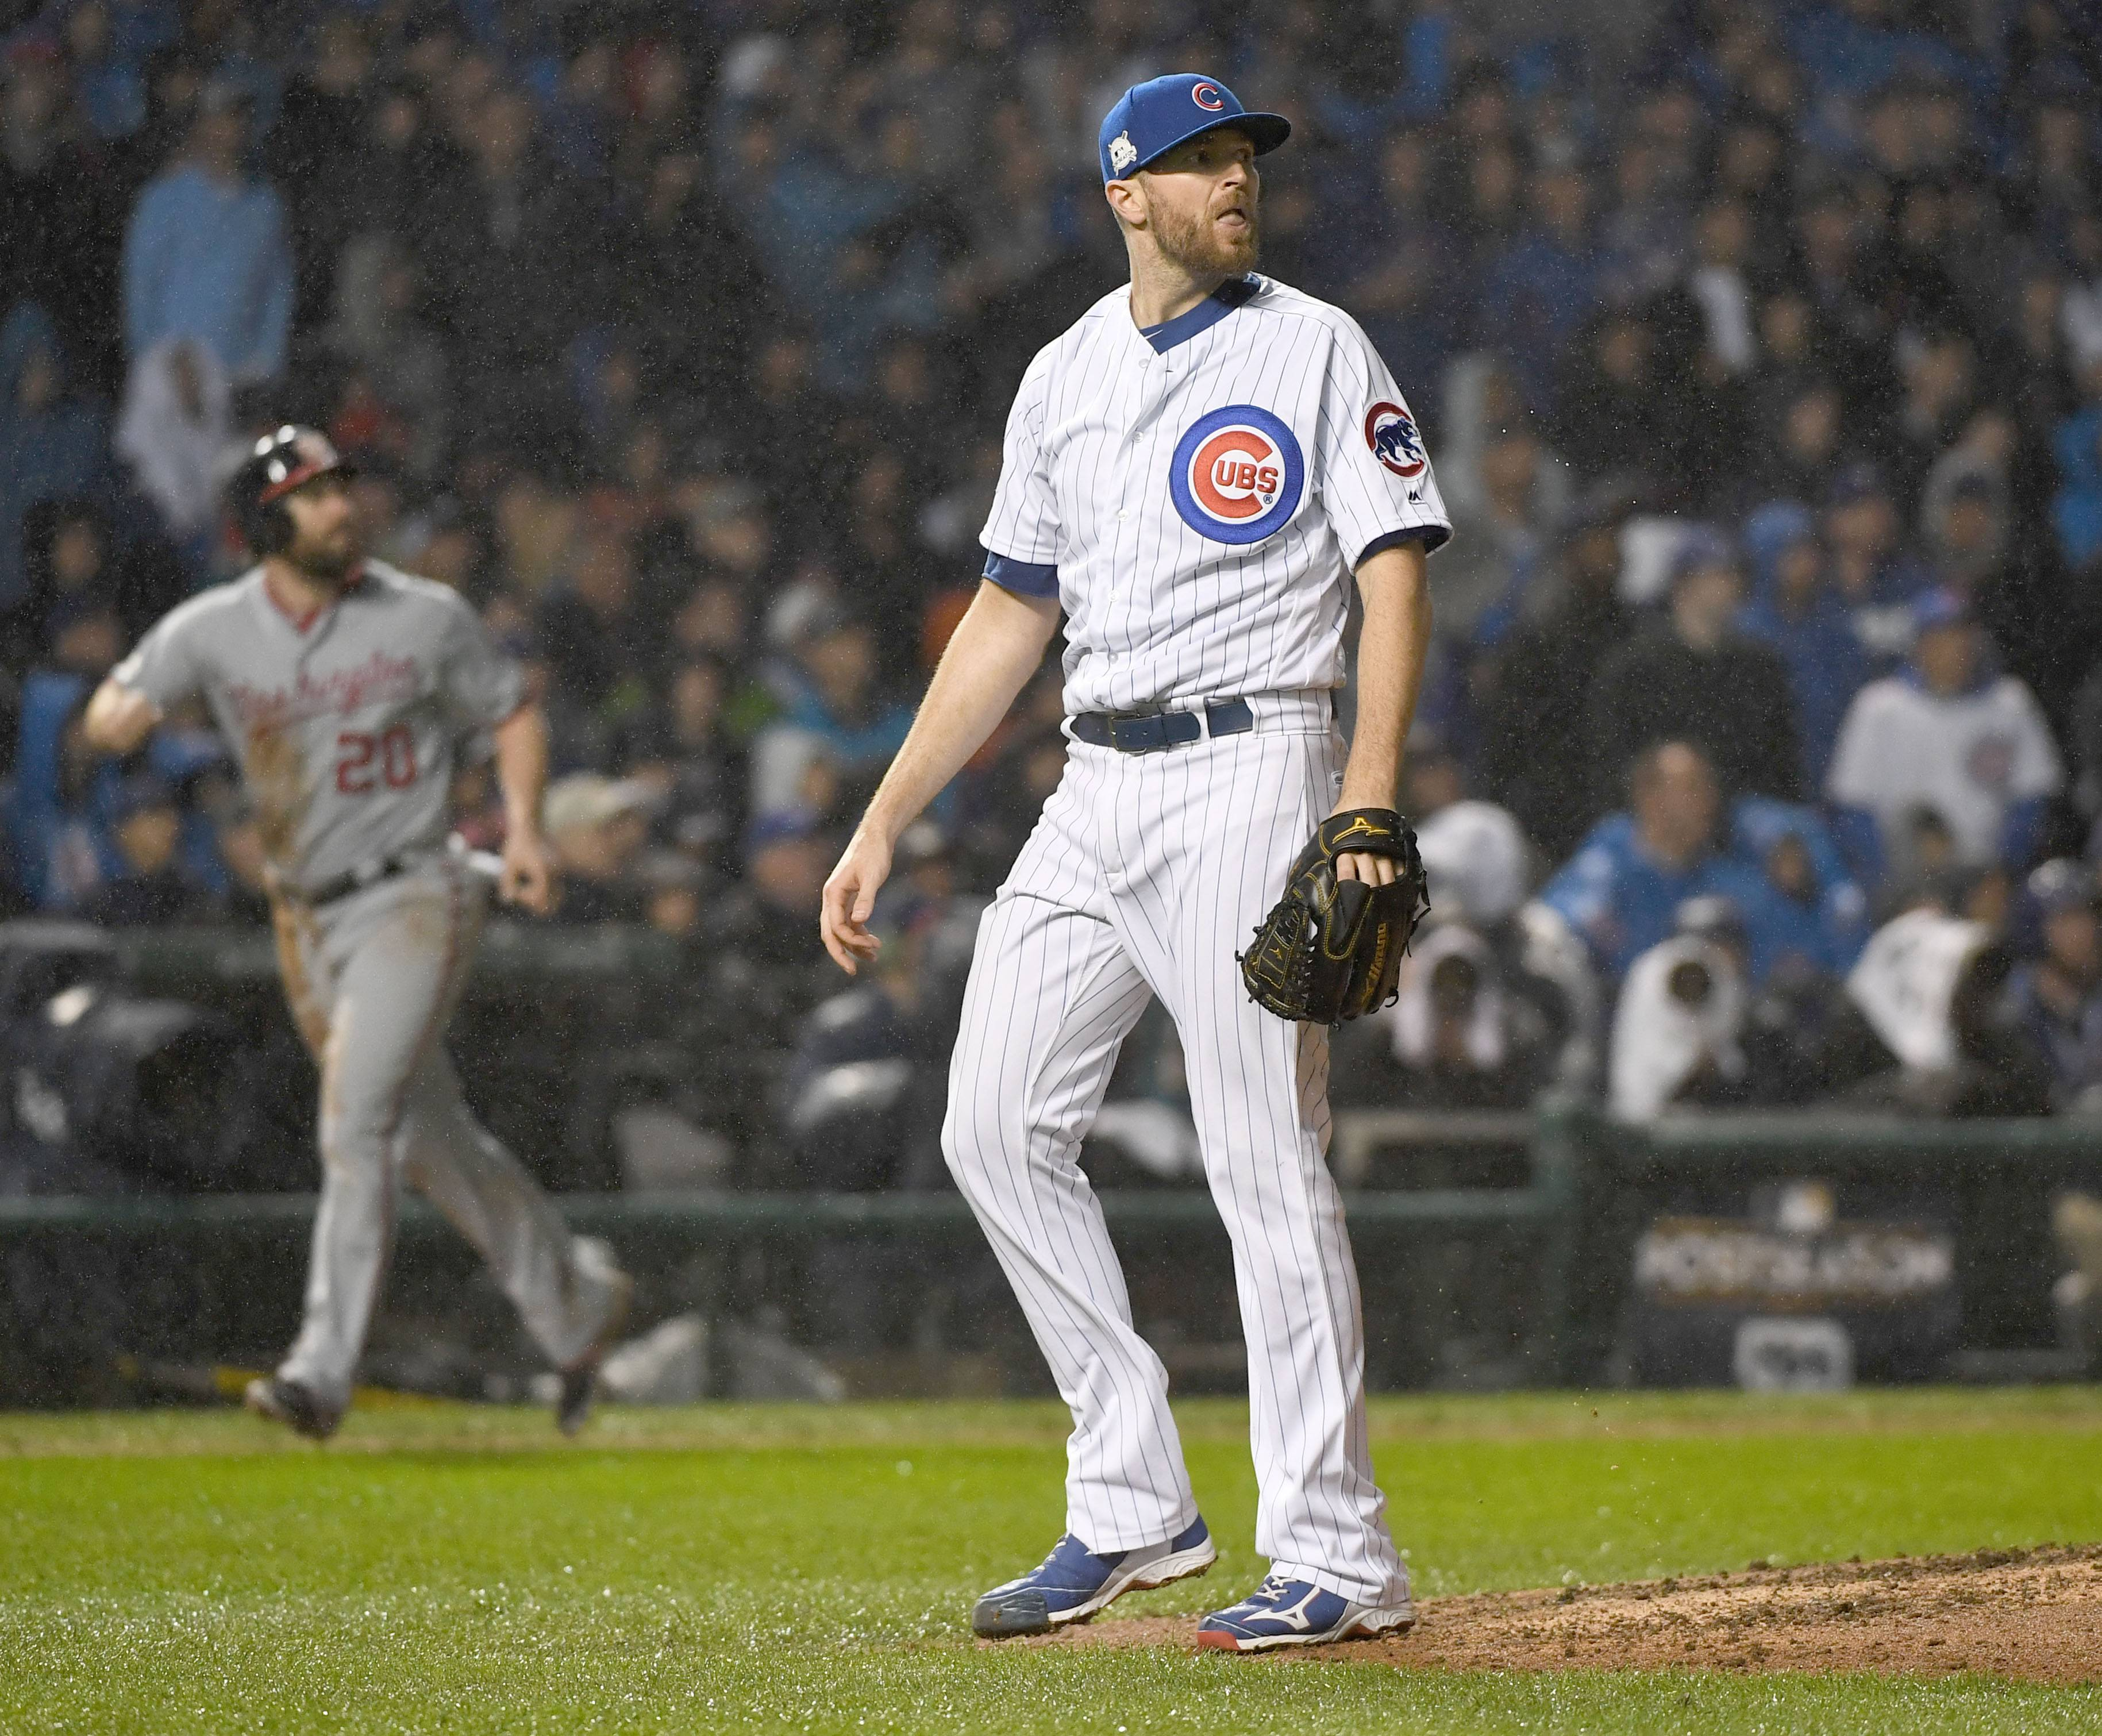 Chicago Cubs relief pitcher Wade Davis (71) watches the flight of a grand slam off the bat of Washington Nationals center fielder Michael Taylor (3) during Game 4 of the NLDS at Wrigley Field in Chicago, Ill. on Wednesday, Oct. 11, 2017. MANDATORY CREDIT, MAGS OUT,(AP photo / Daily Herald, John Starks )